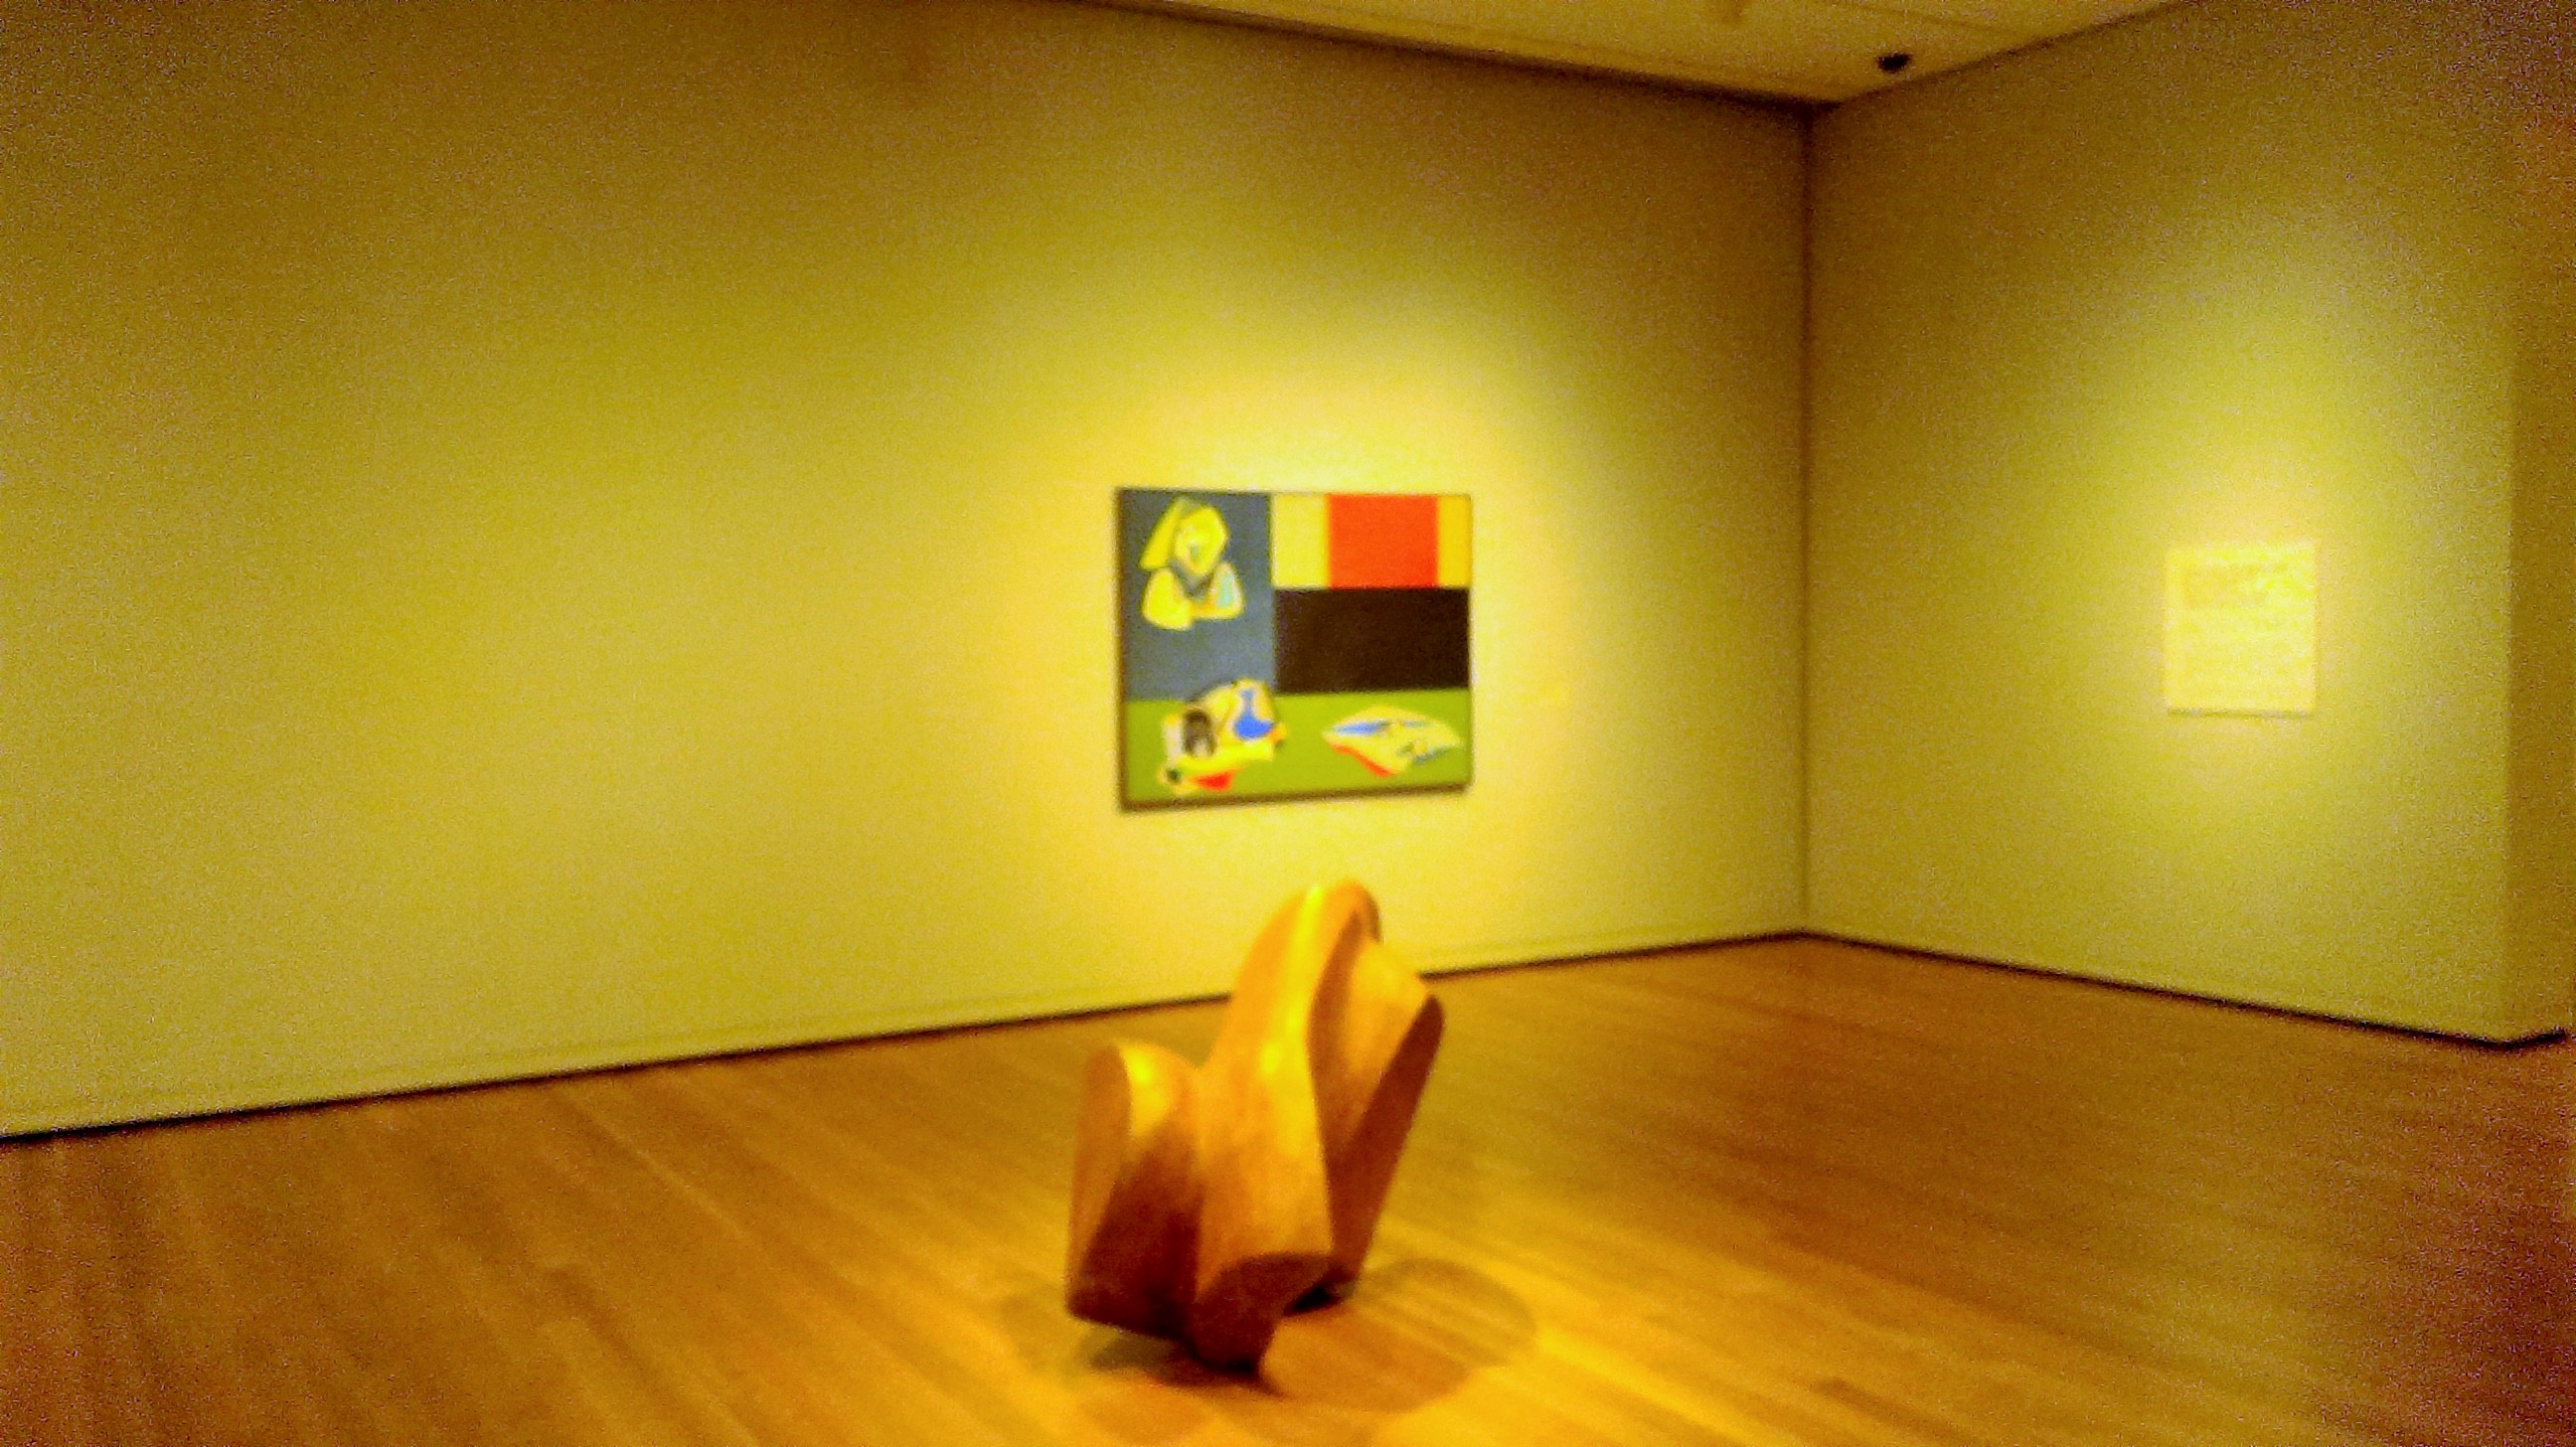 Reflections after an odd museum experience – tricia burmeister